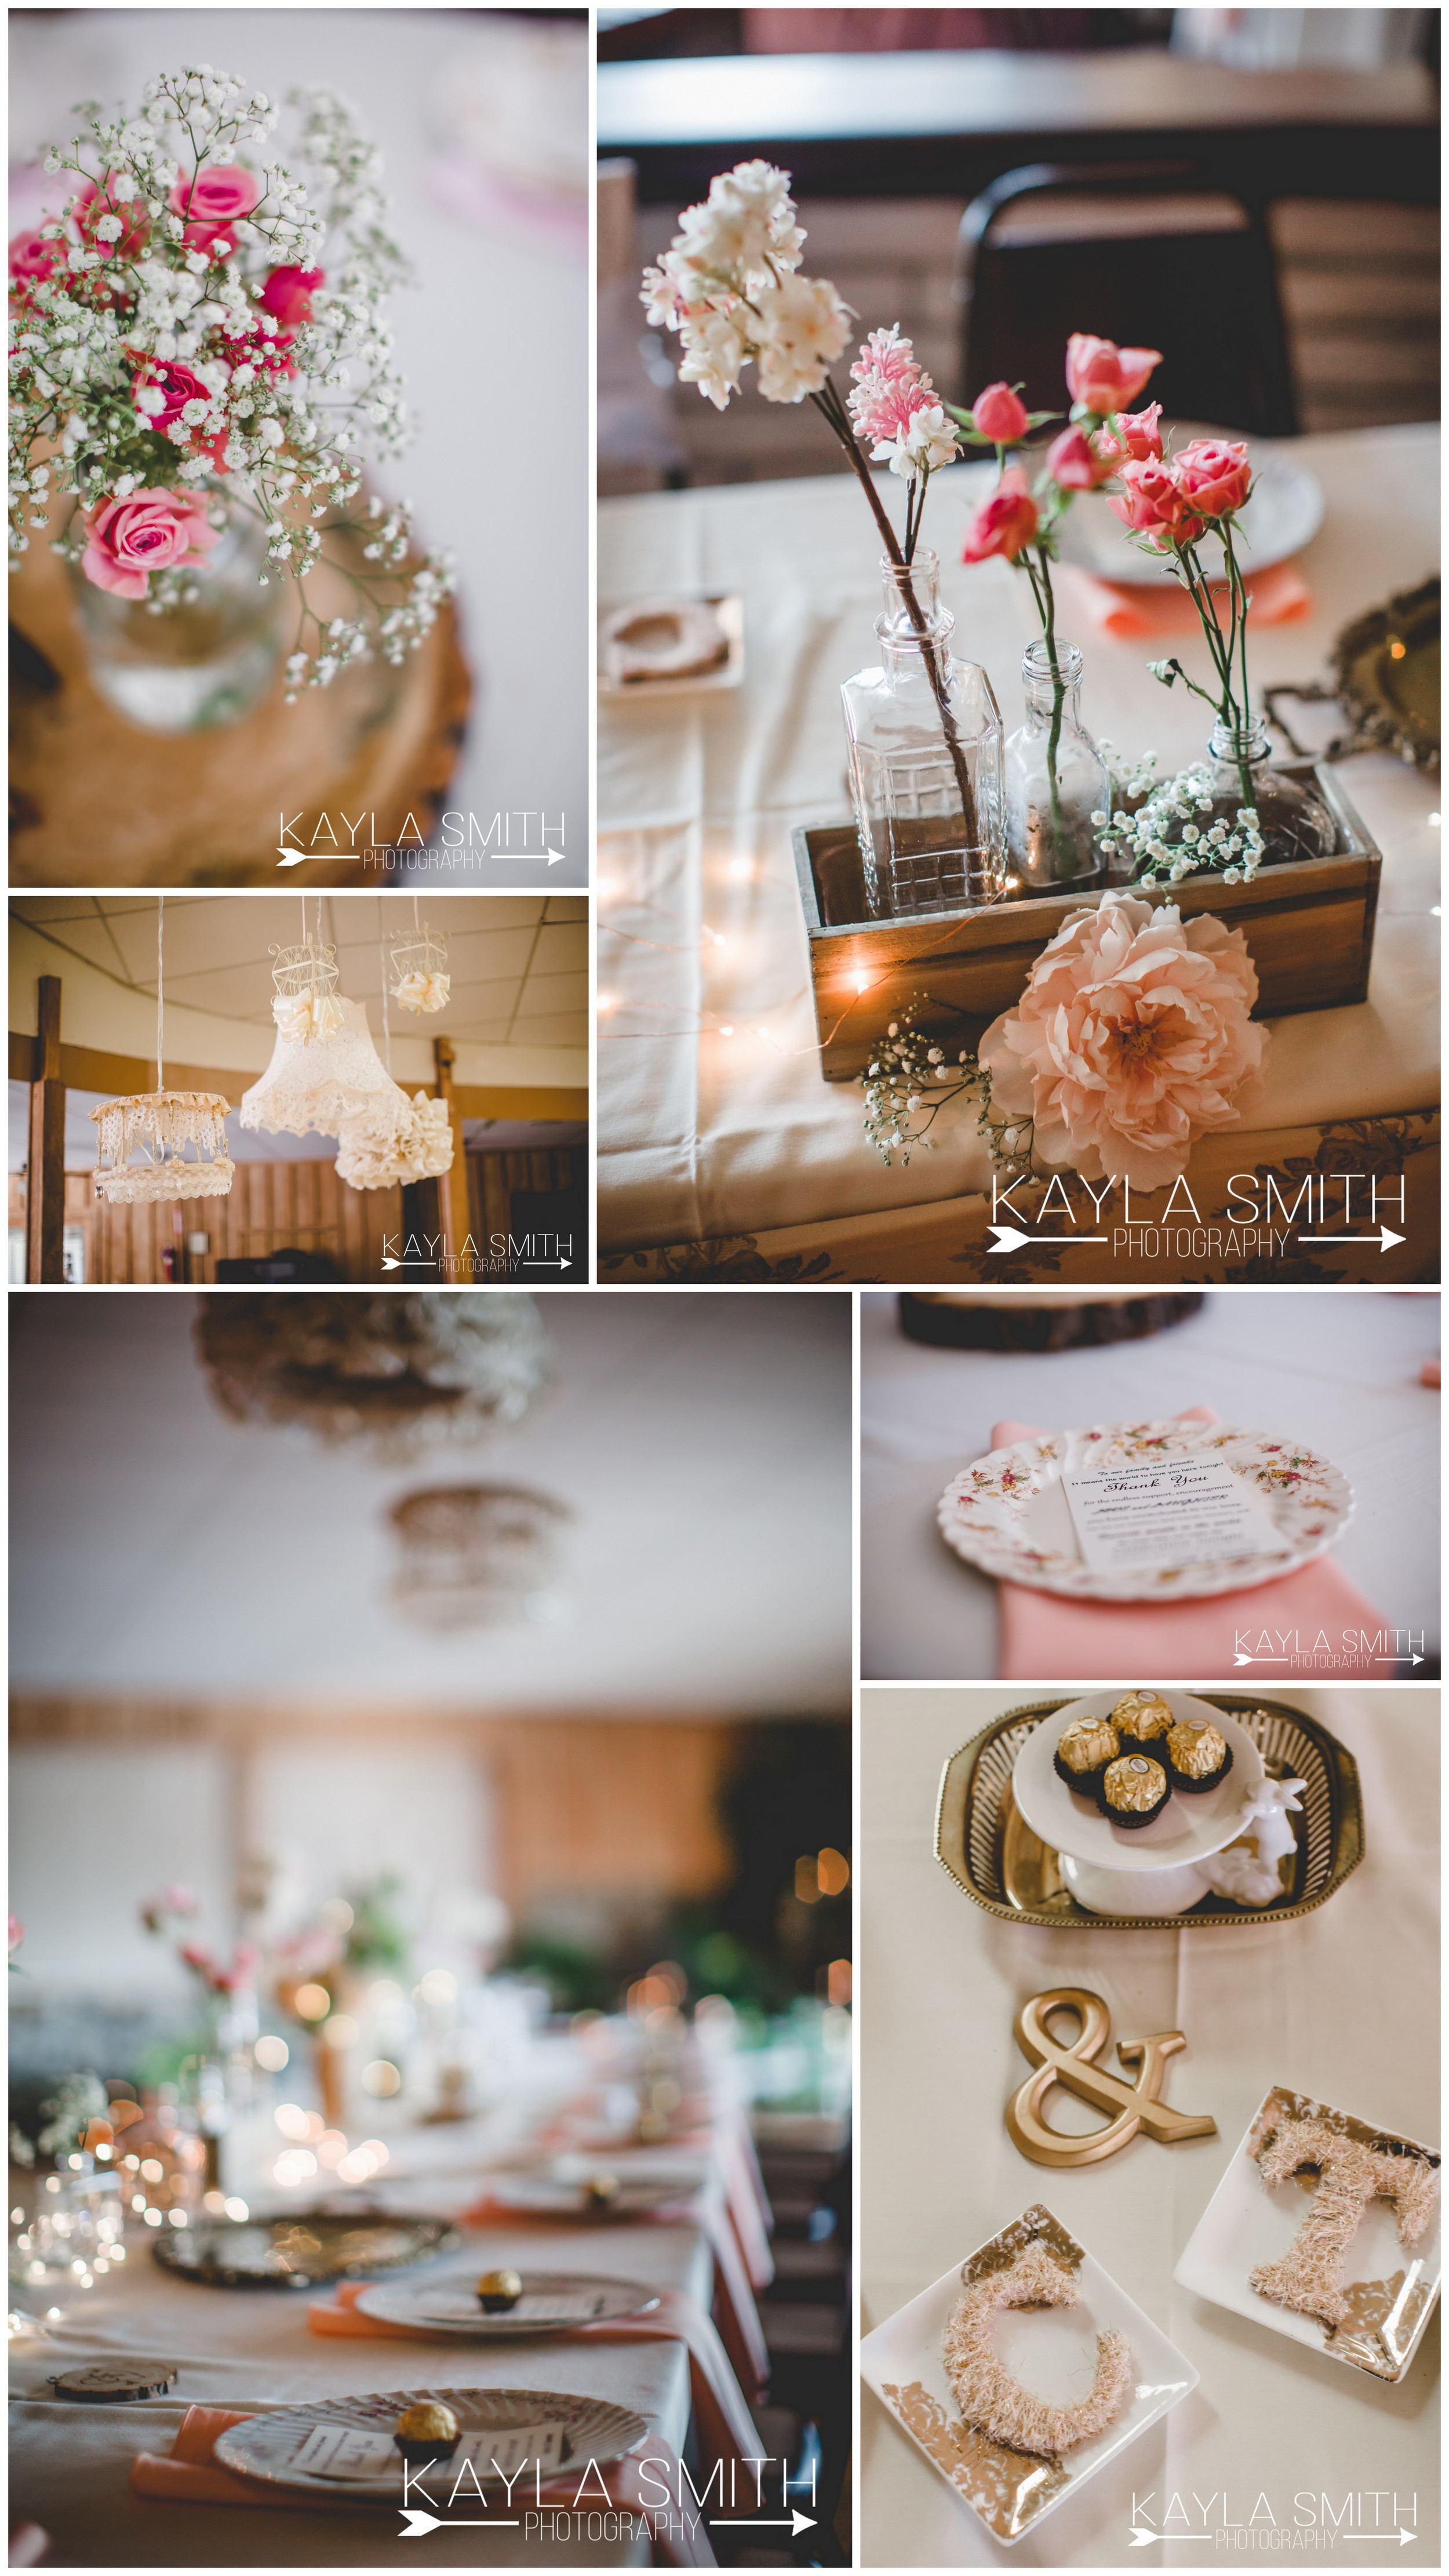 The couple had some of the most thought-out details I have seen. I loved the vintage, homemade flair. My favorite detail was the vintage plates that they used to serve their guests dinner.